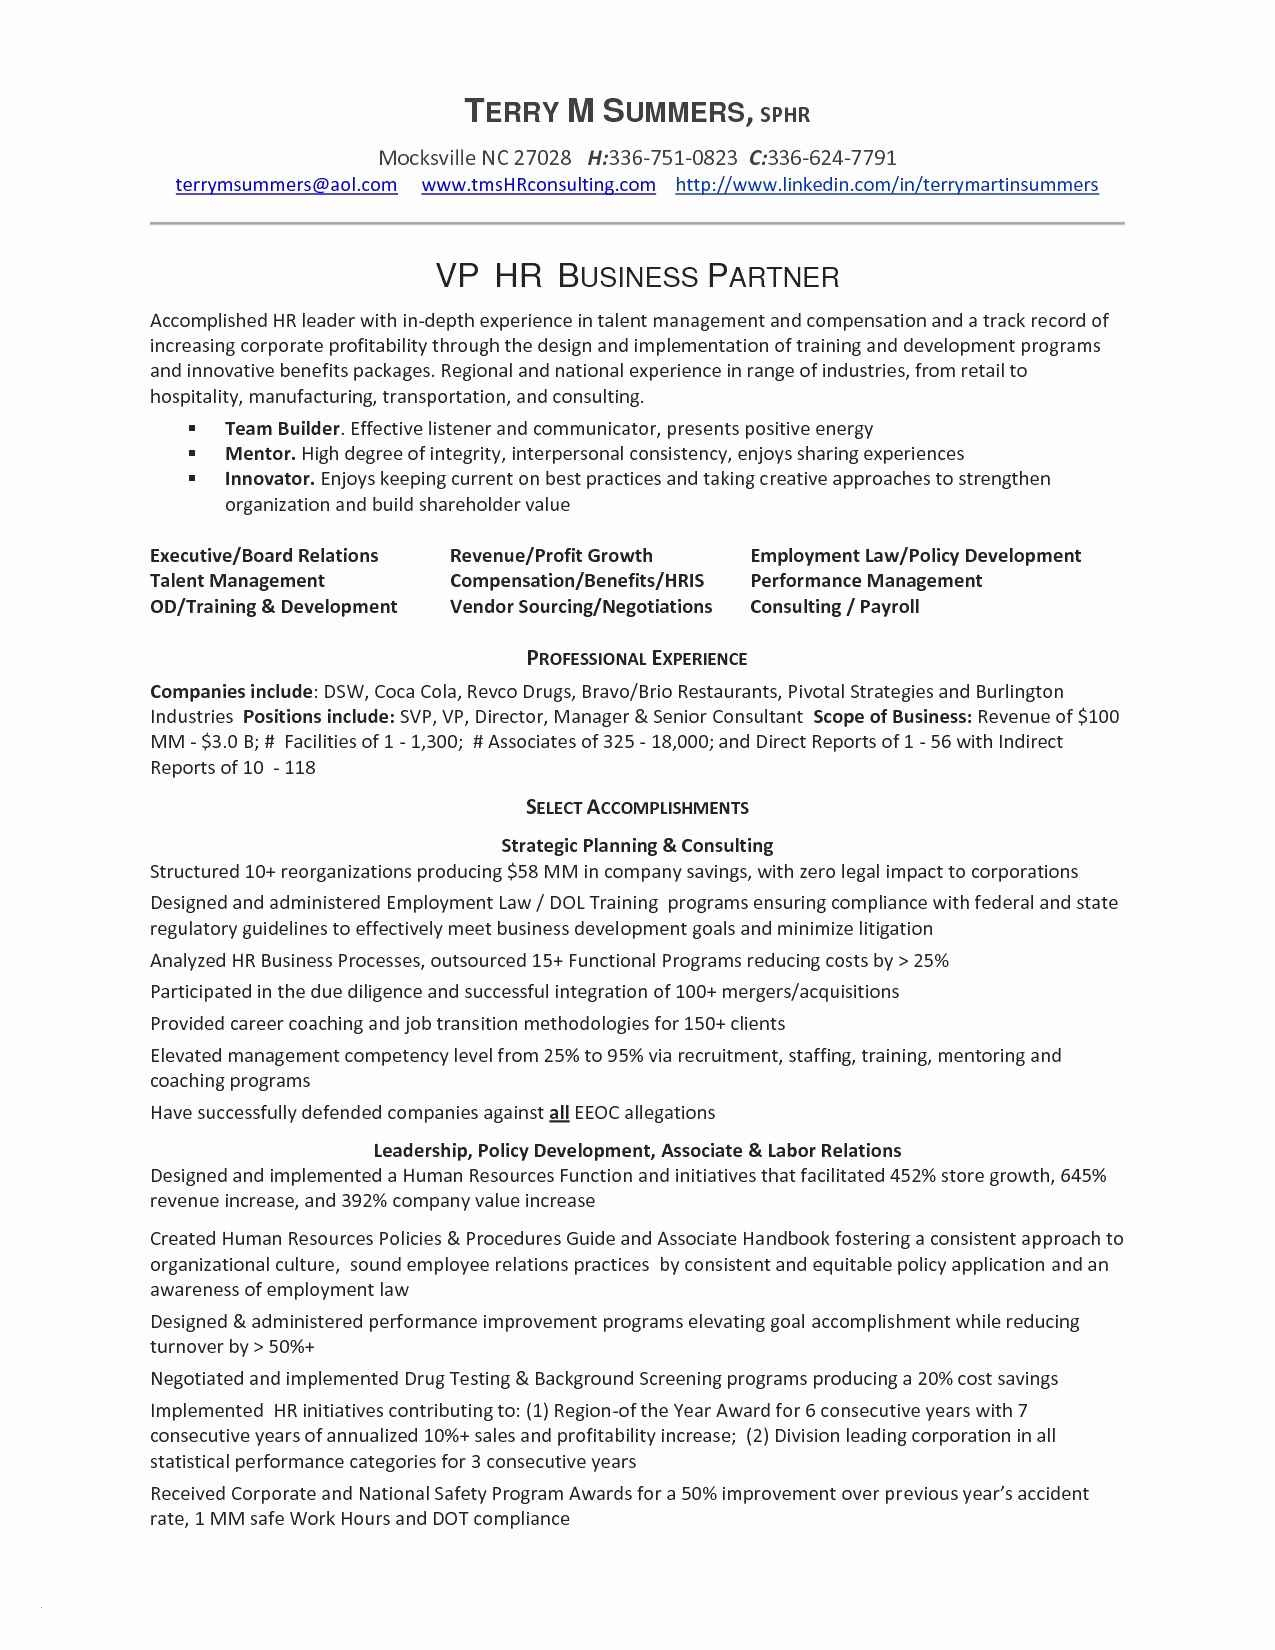 Data Analyst Resume Template - Data Analyst Resume Template Best Senior Data Analyst Resume